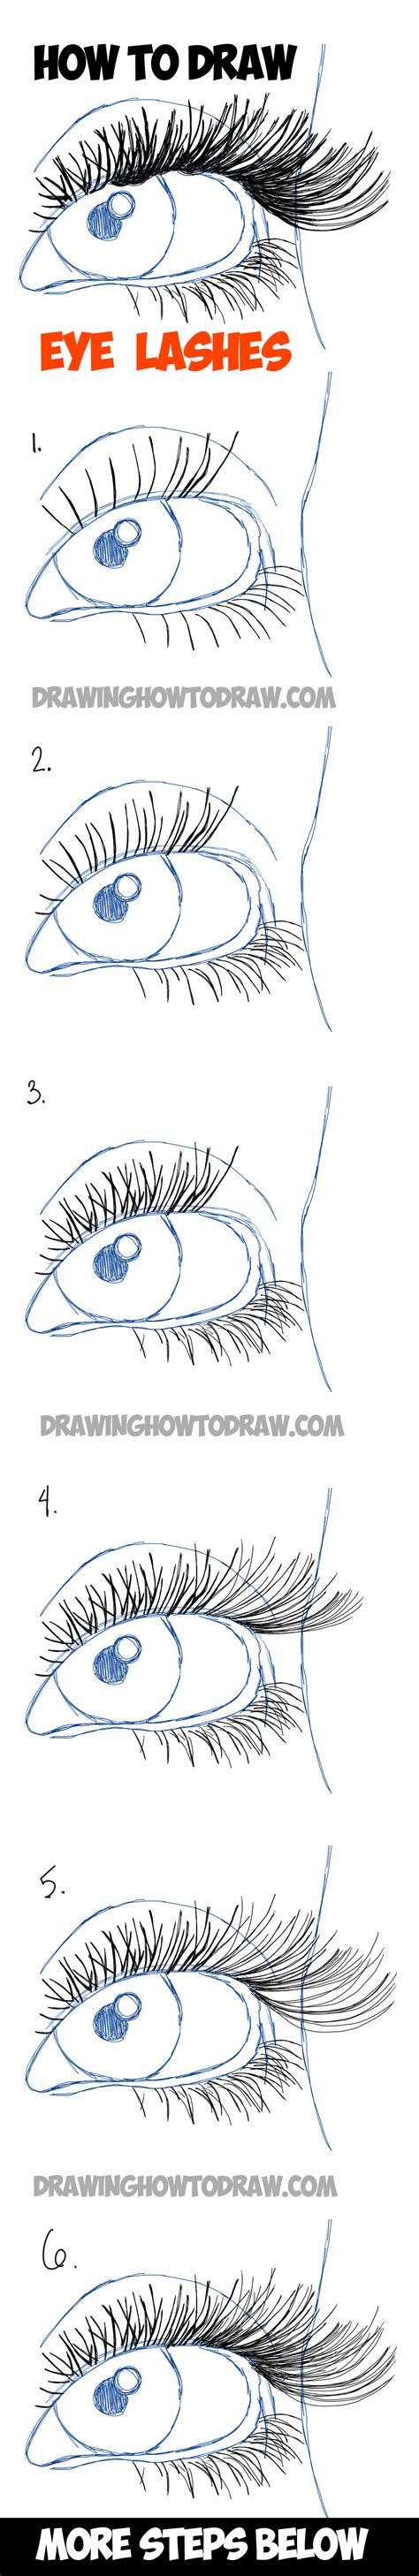 how to draw eye lashes with step by step illustrated